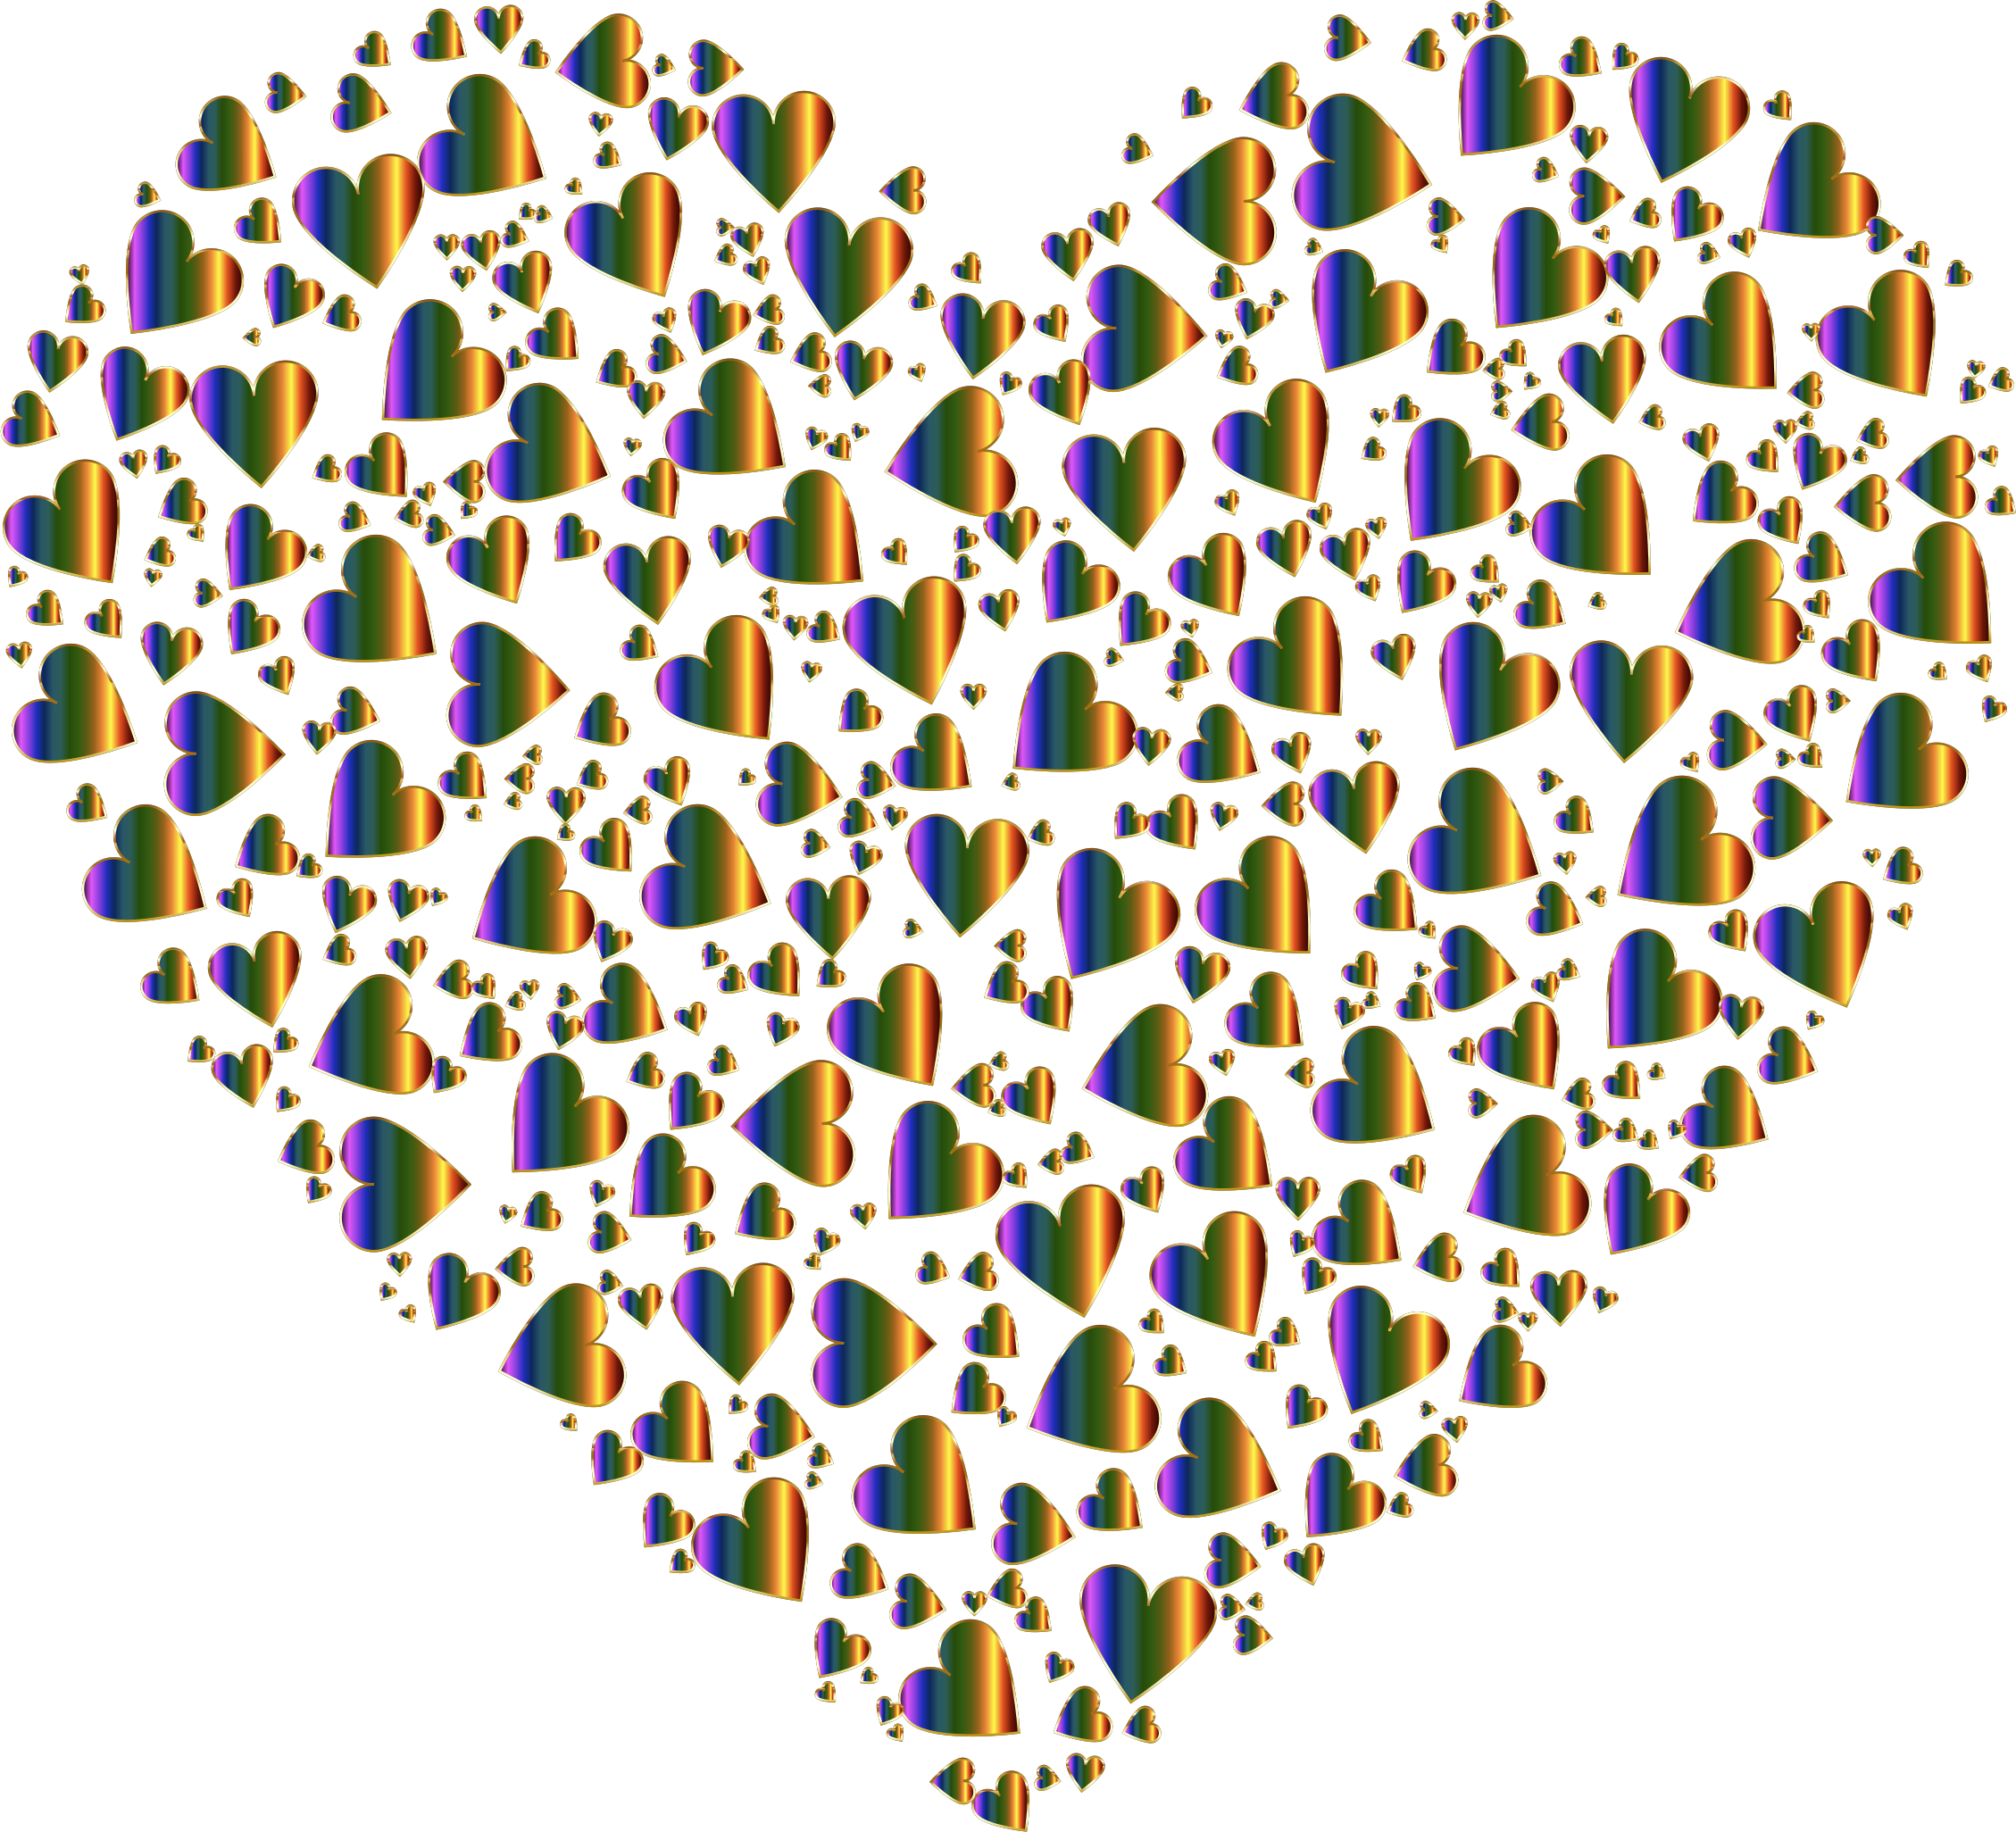 Chaotic Colorful Heart Fractal  10 No Background by GDJ